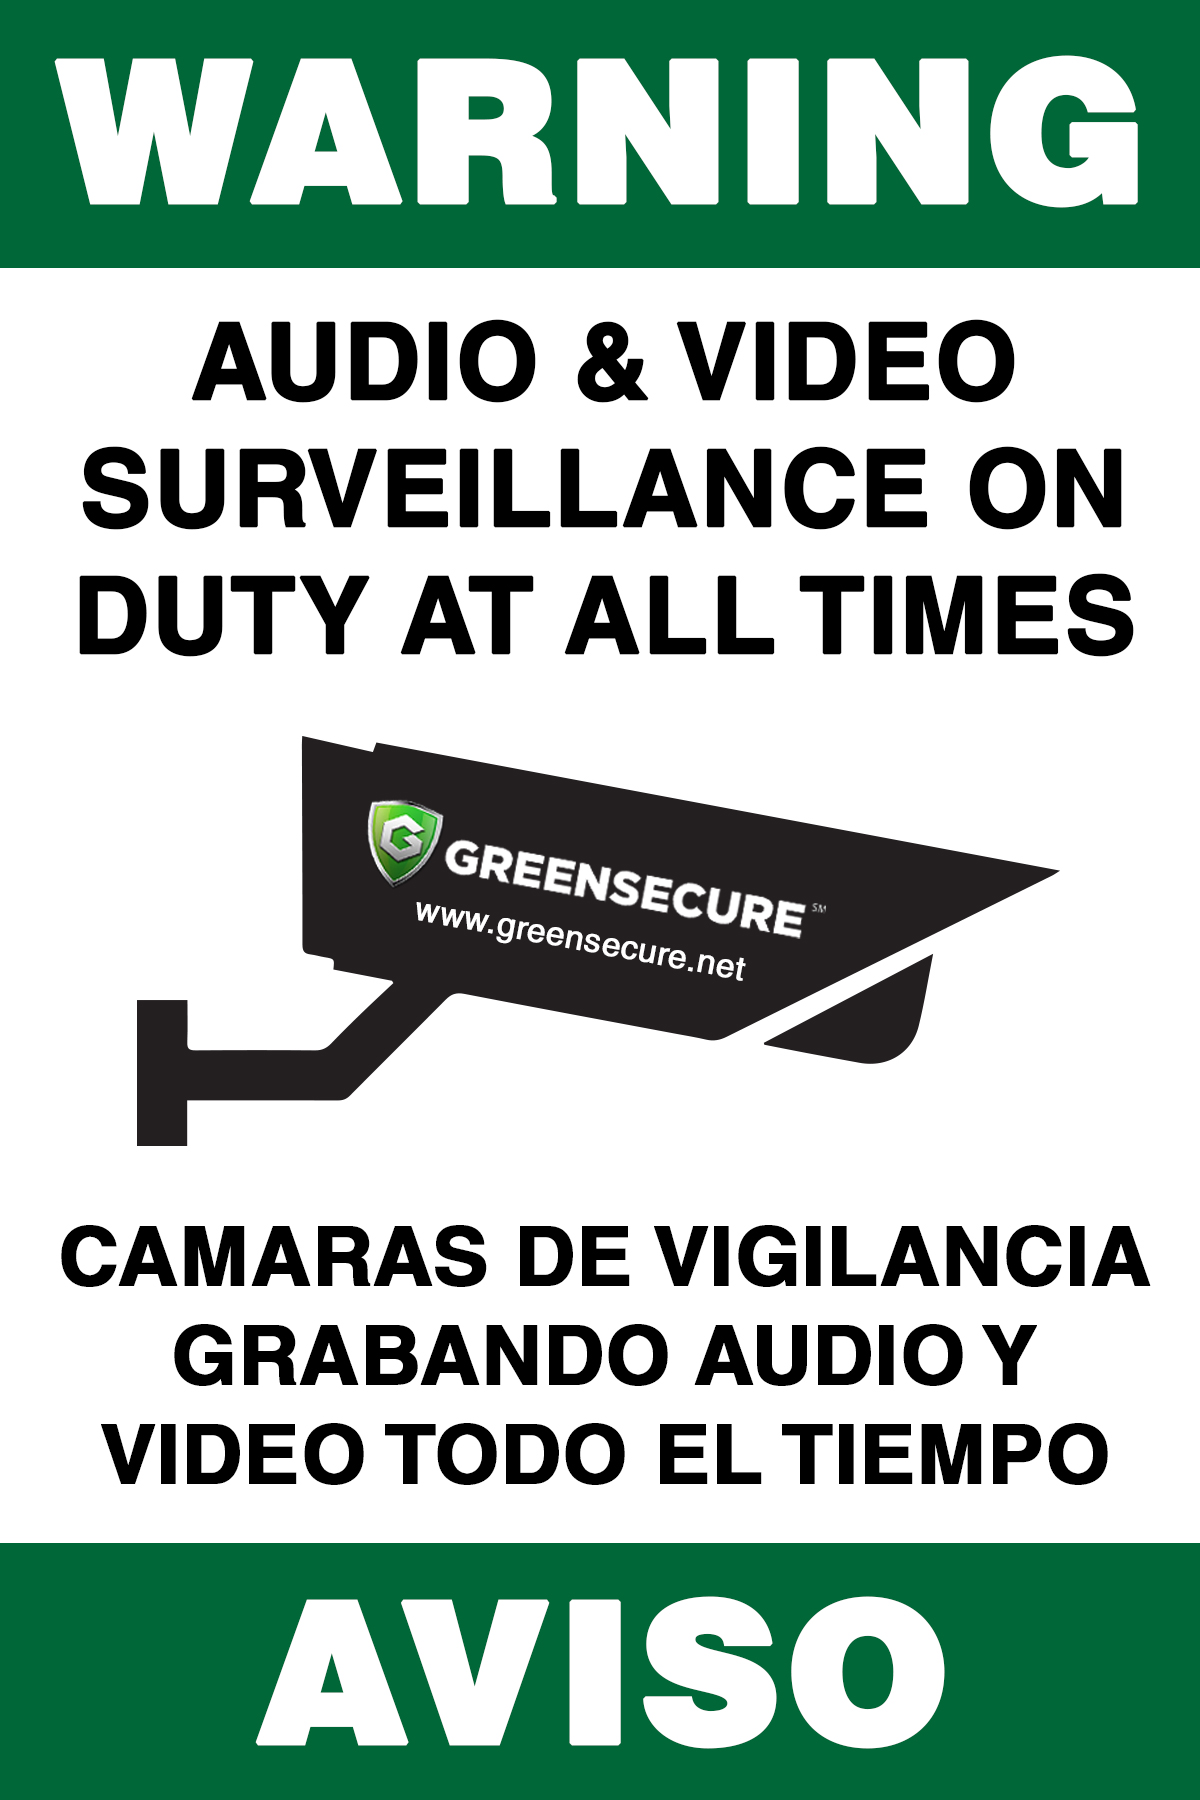 gw-greensecure-surveillance-notice-tall-001